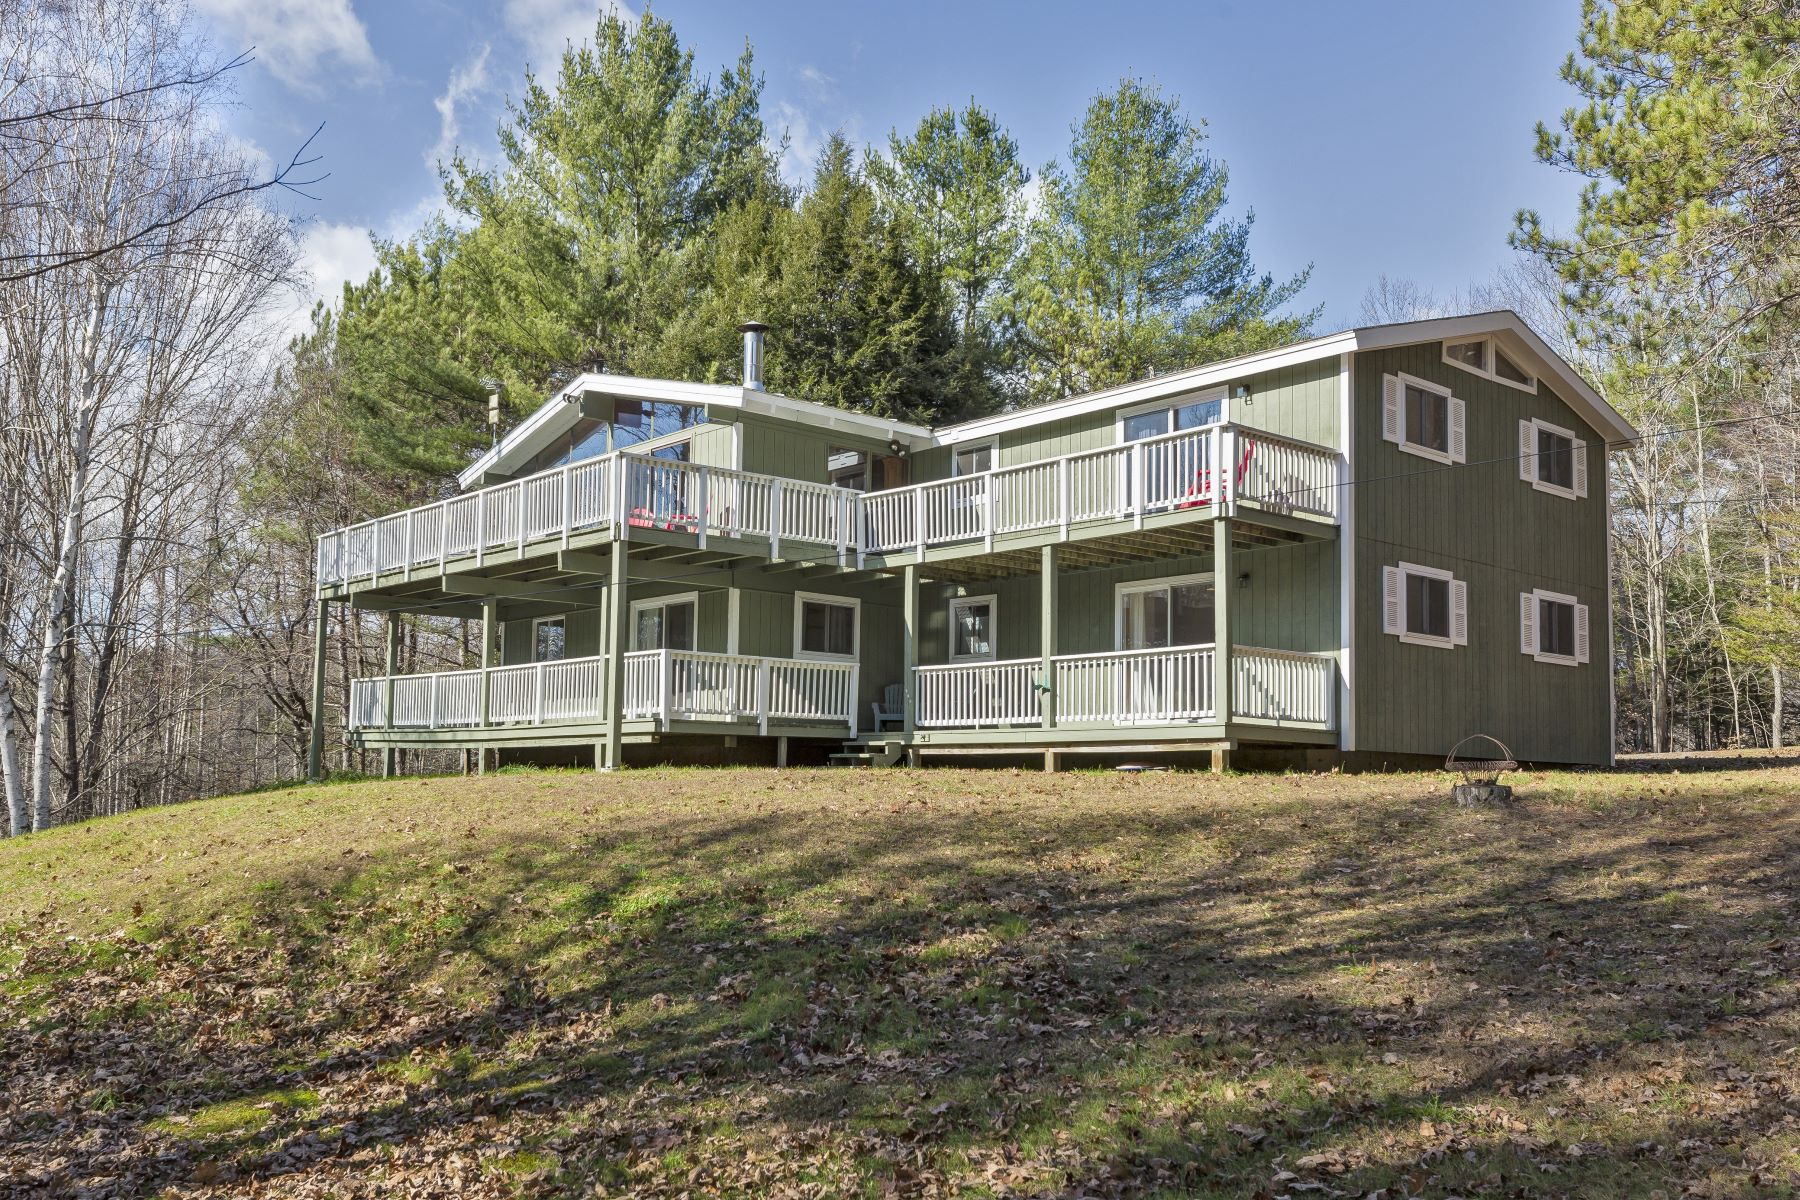 Property for Sale at Seven Bedroom Chalet near Mt. Ascutney 160 Strawberry Hill Rd West Windsor, Vermont 05037 United States